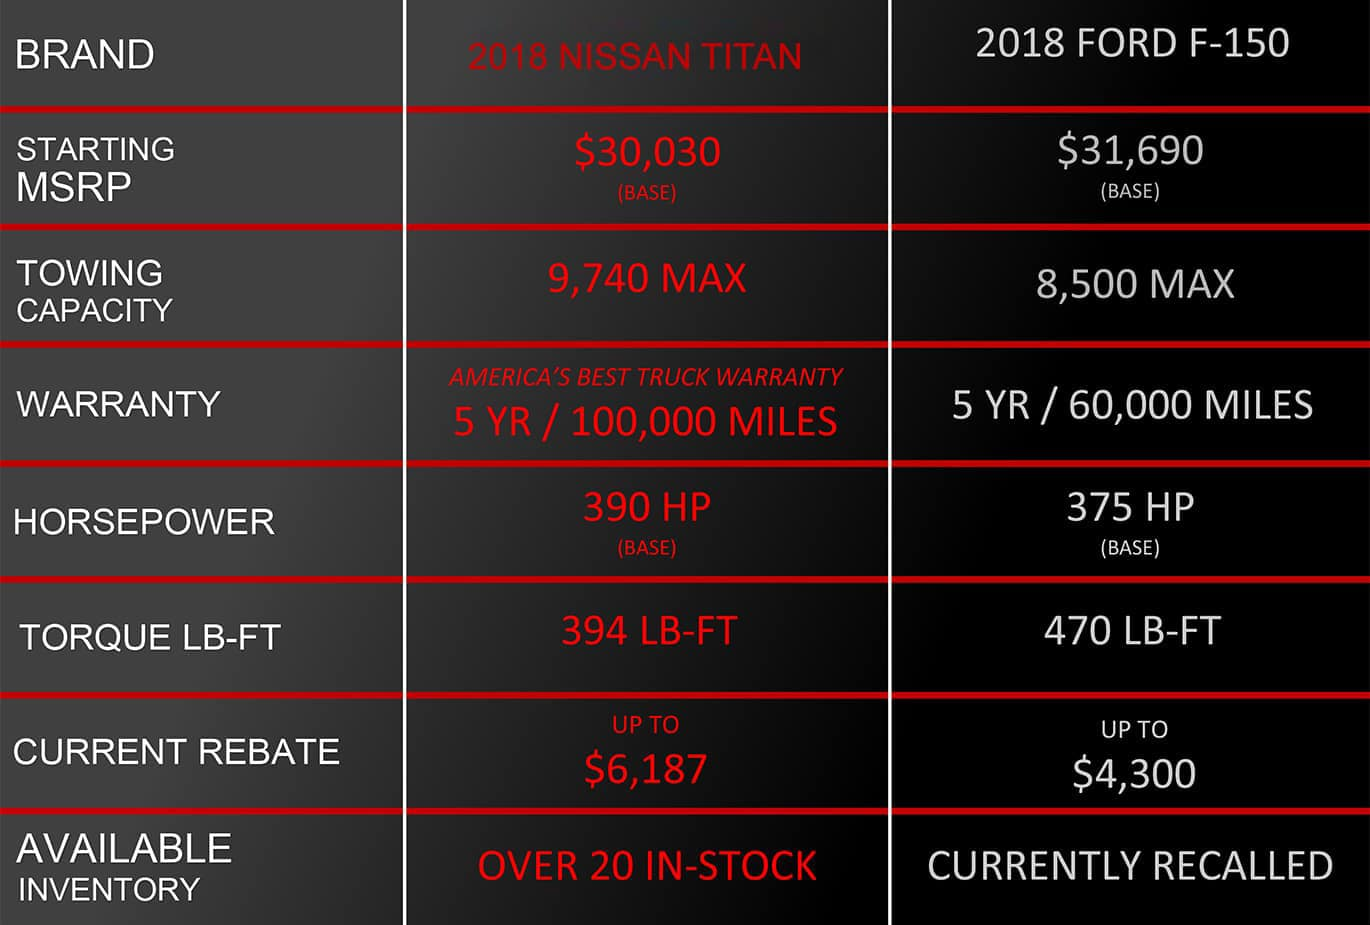 Titan VS F-150 Comparison Chart